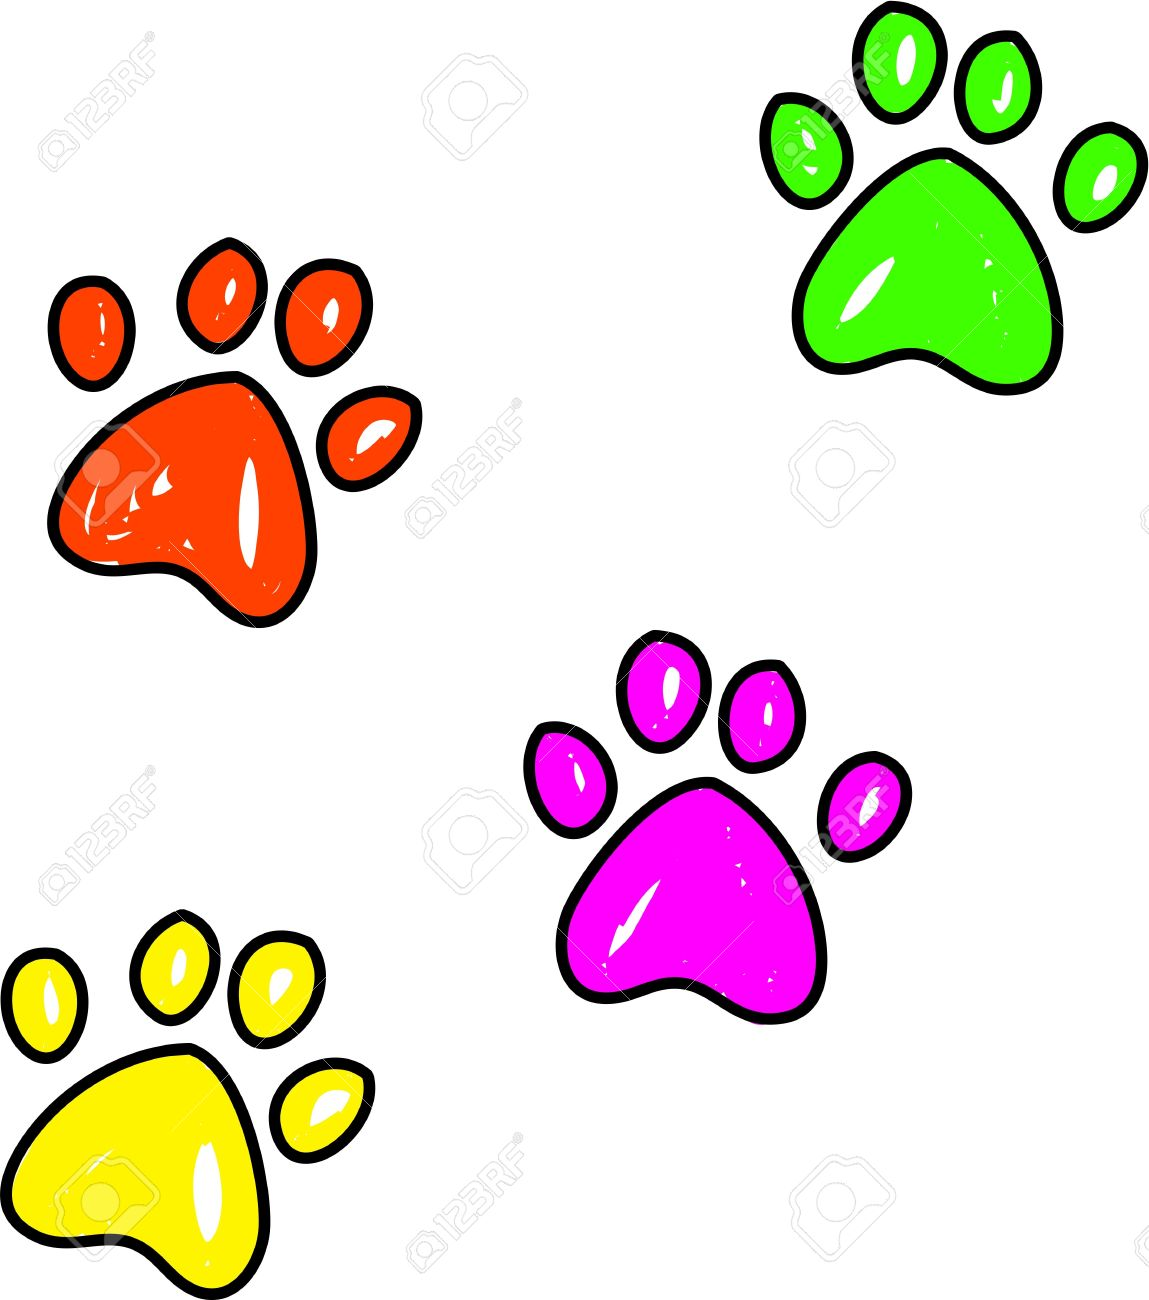 Colourful Whimsical Drawing Of Dog Paw Prints Isolated On White